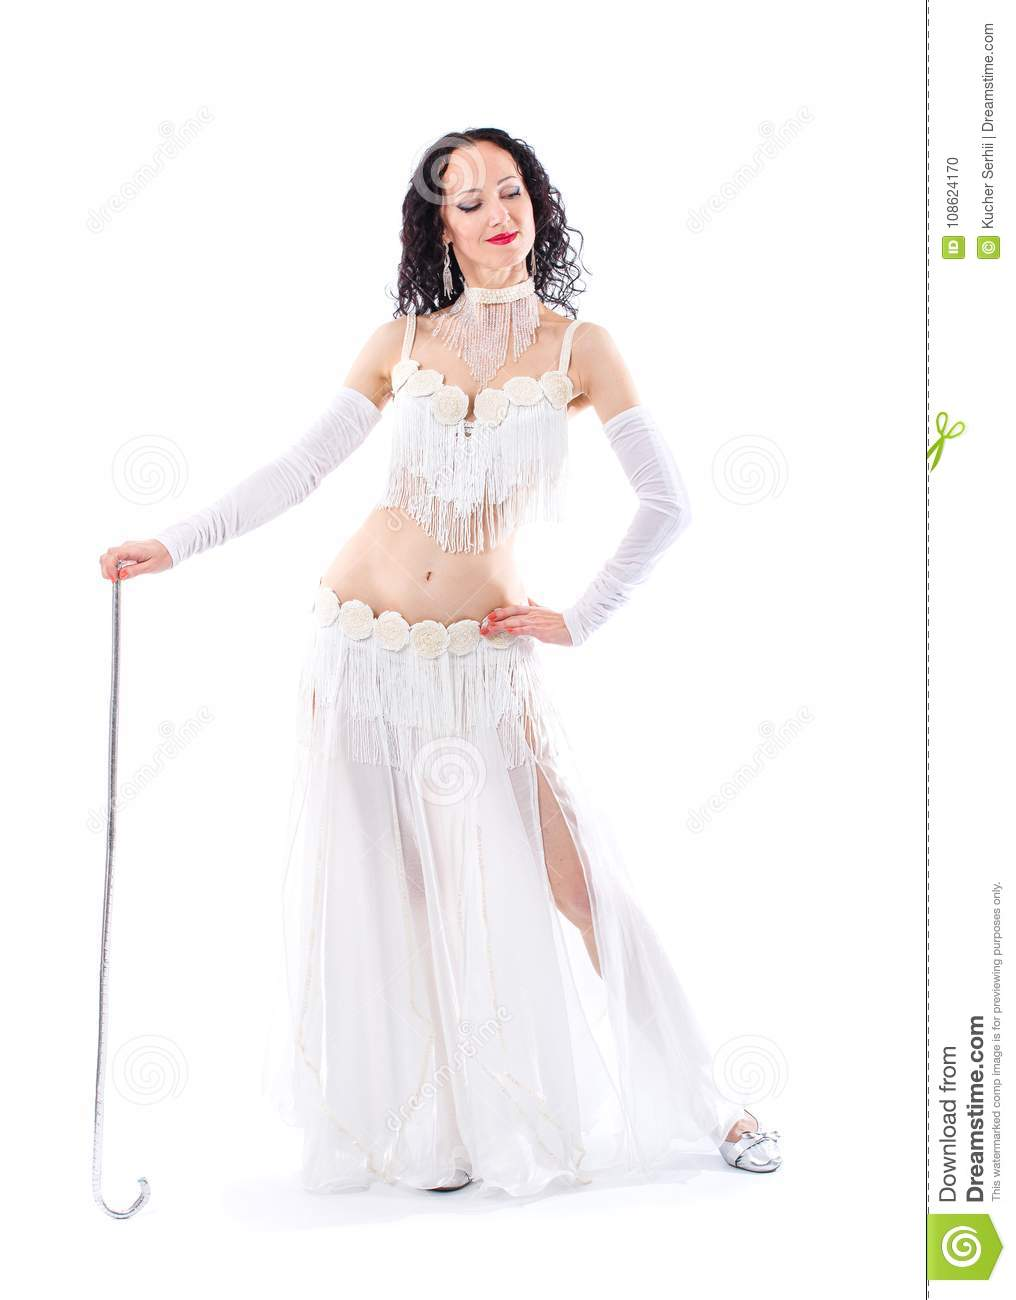 76ca70607e8d6 Beautiful Arabian bellydancer woman in bellydance colorful costume Over  white background